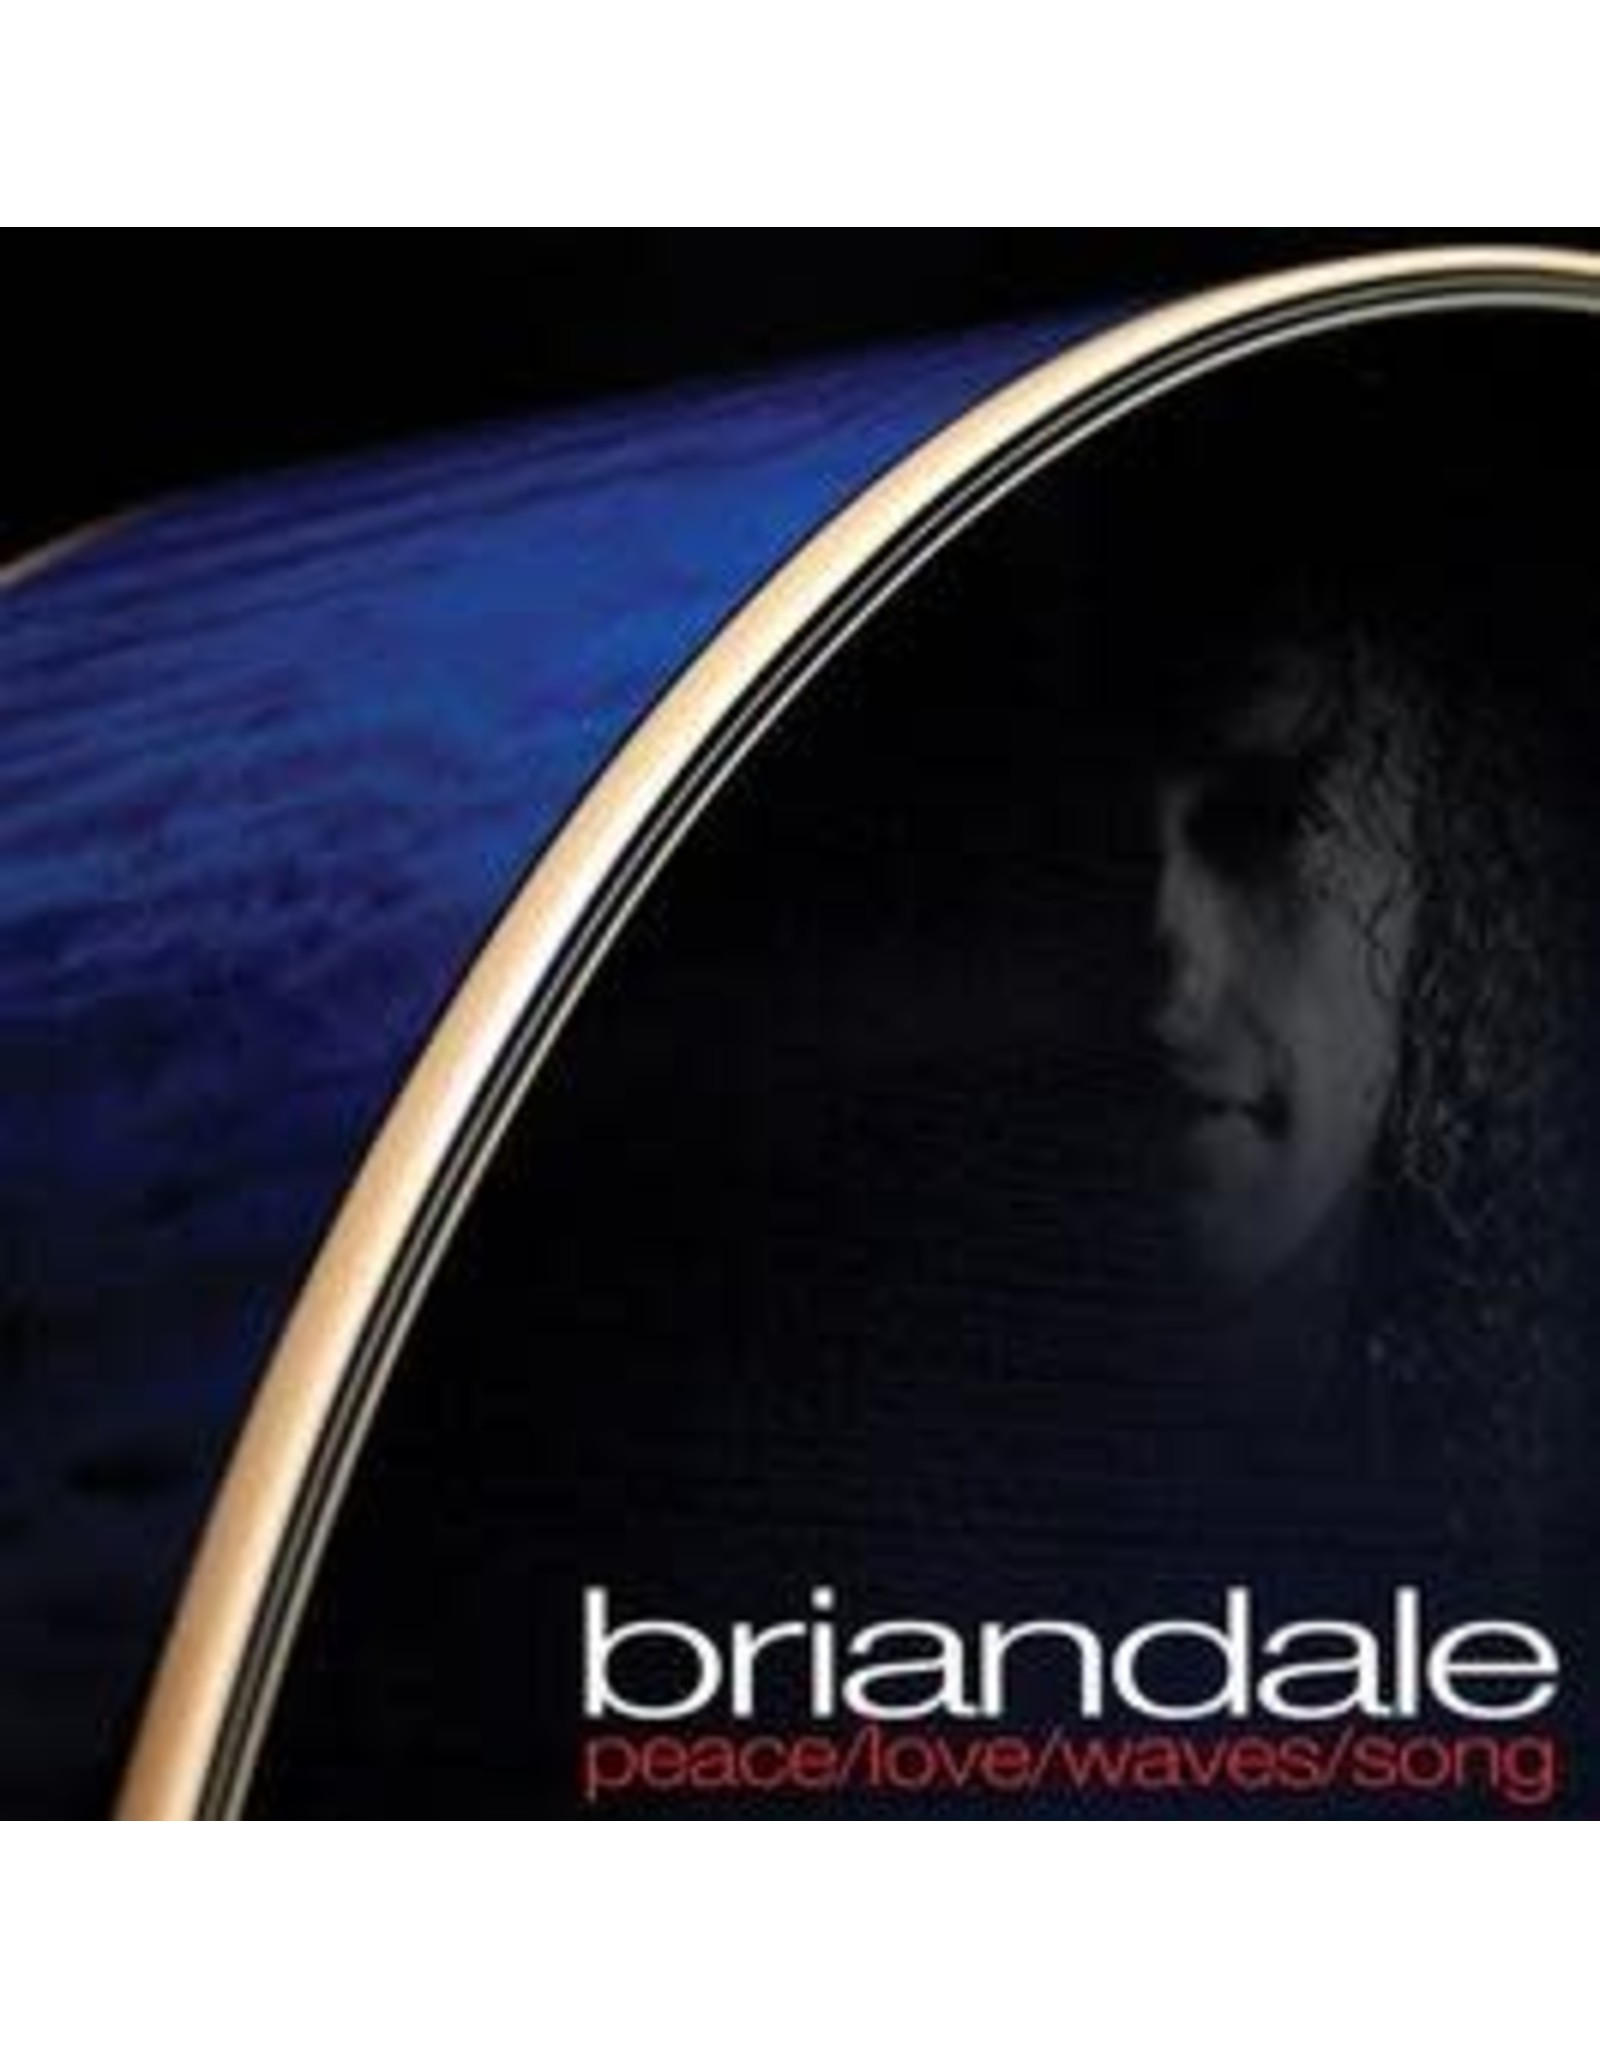 Briandale - Peace/Love/Waves/Song CD